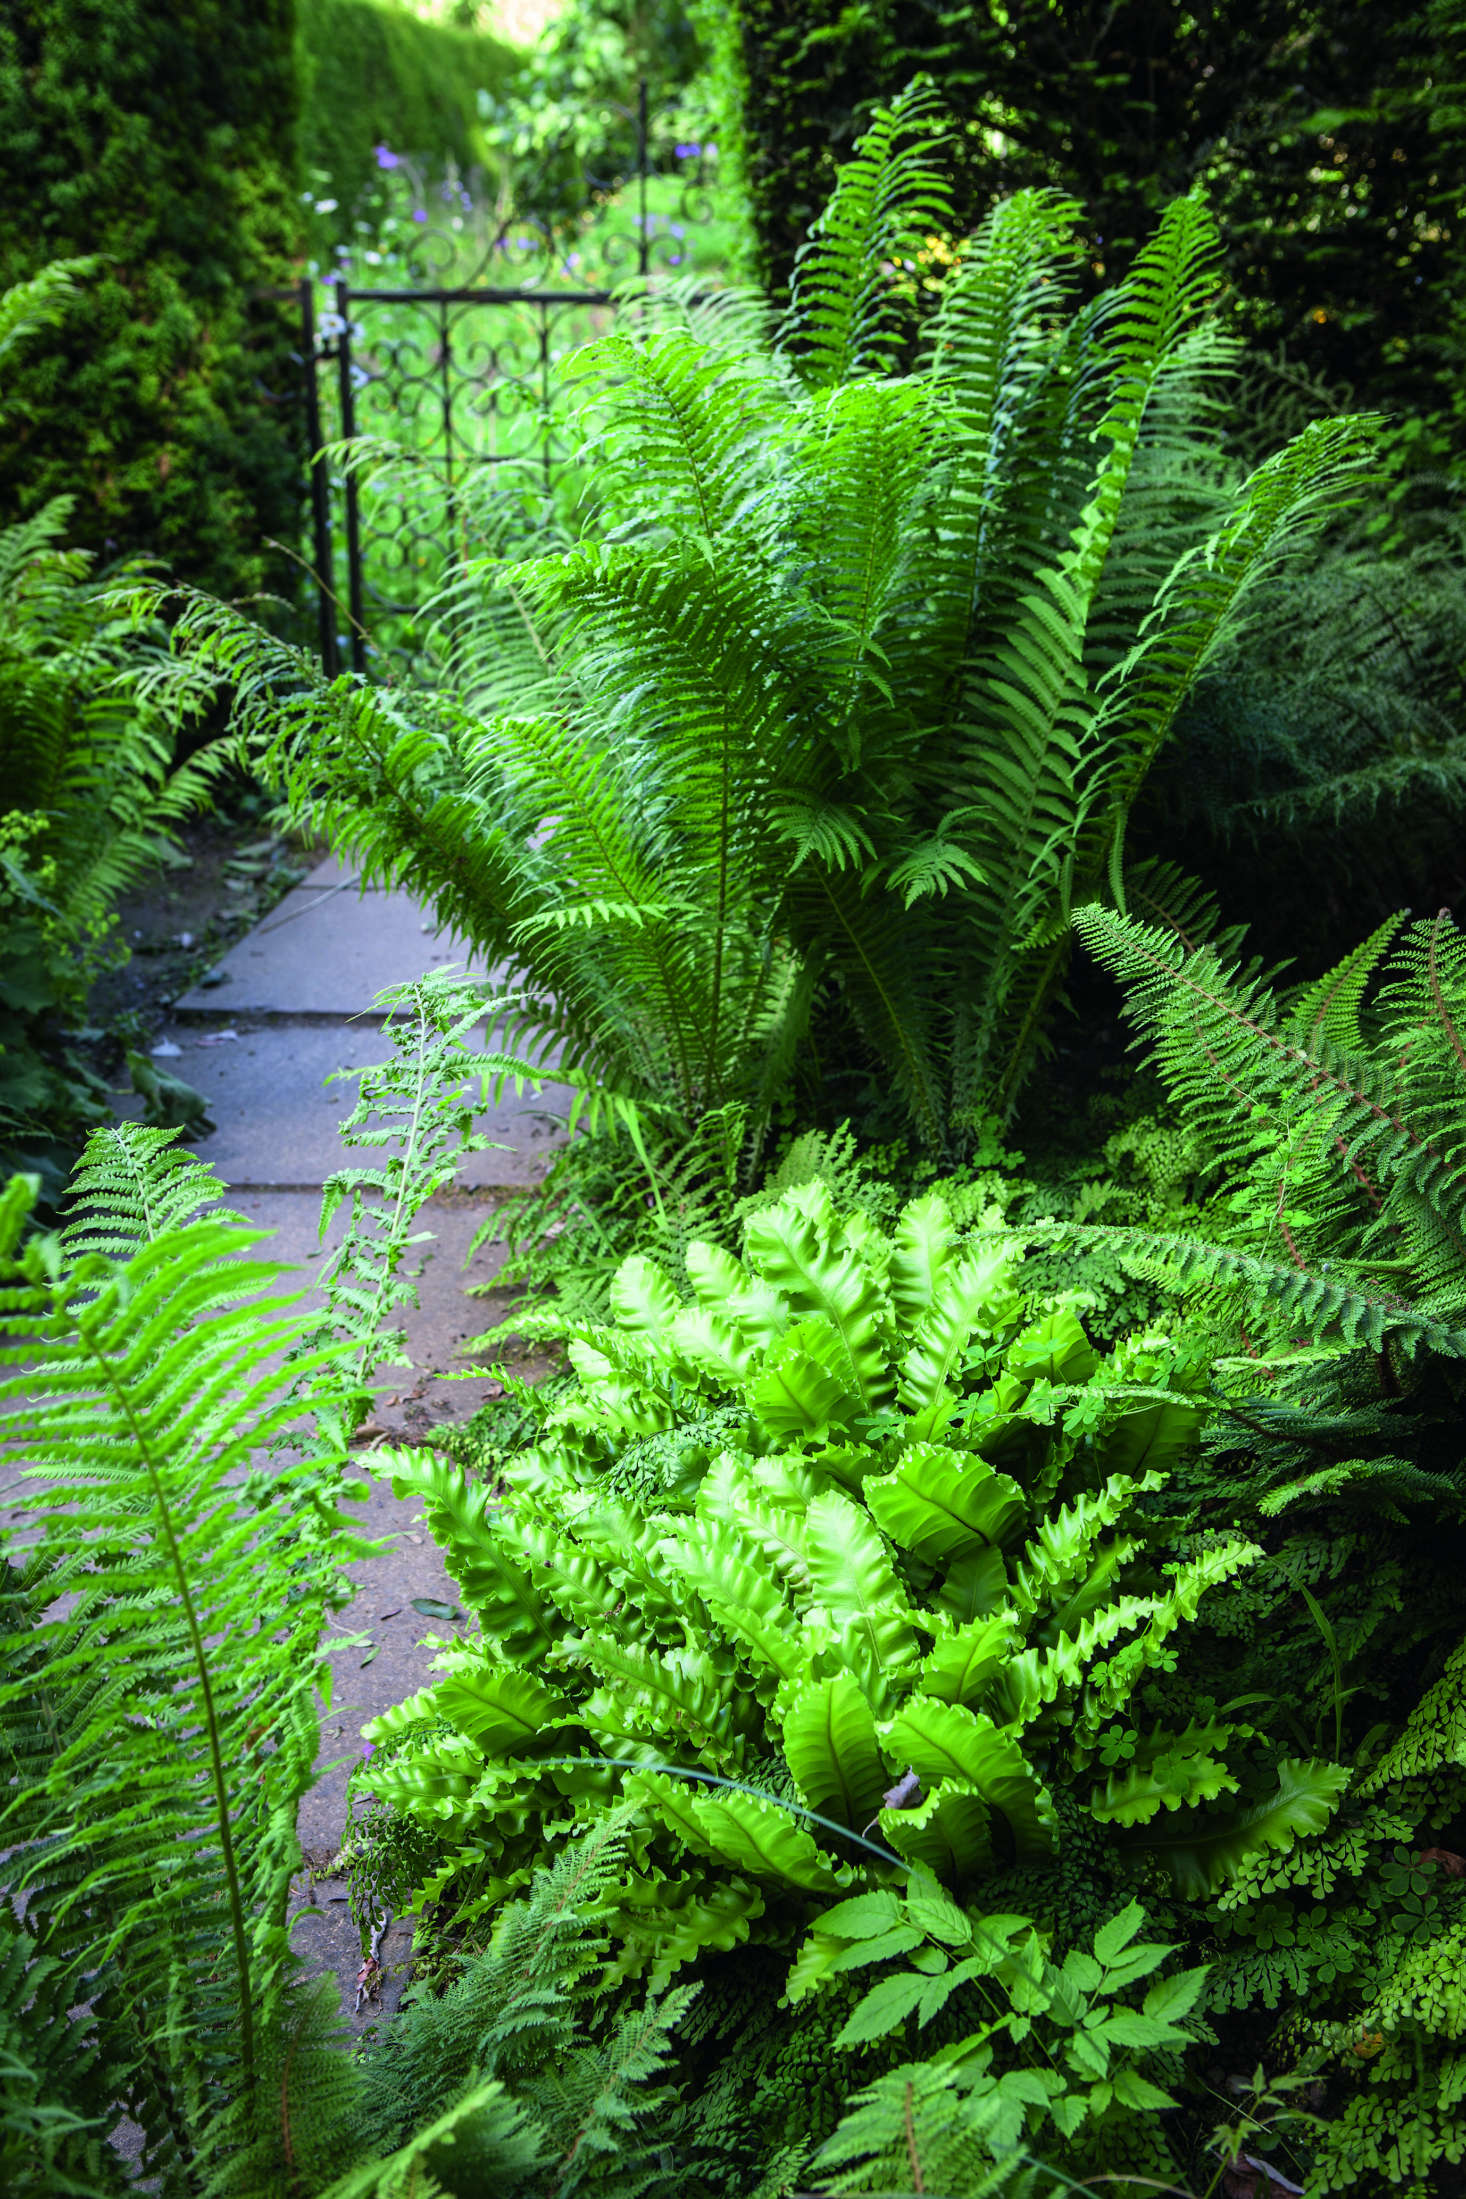 Beyond the rose garden, a shady area was the perfect location for Diany to plant a fern border using five varieties including maidenhair fern, evergreen hart's tongue fern, and the Japanese painted lady fern, which are interspersed with grasses including Molinia, Calamagrostis, and Miscanthus and, pictured, shuttlecock ferns.A gate leads to a small wildflower garden with the orchard beyond.